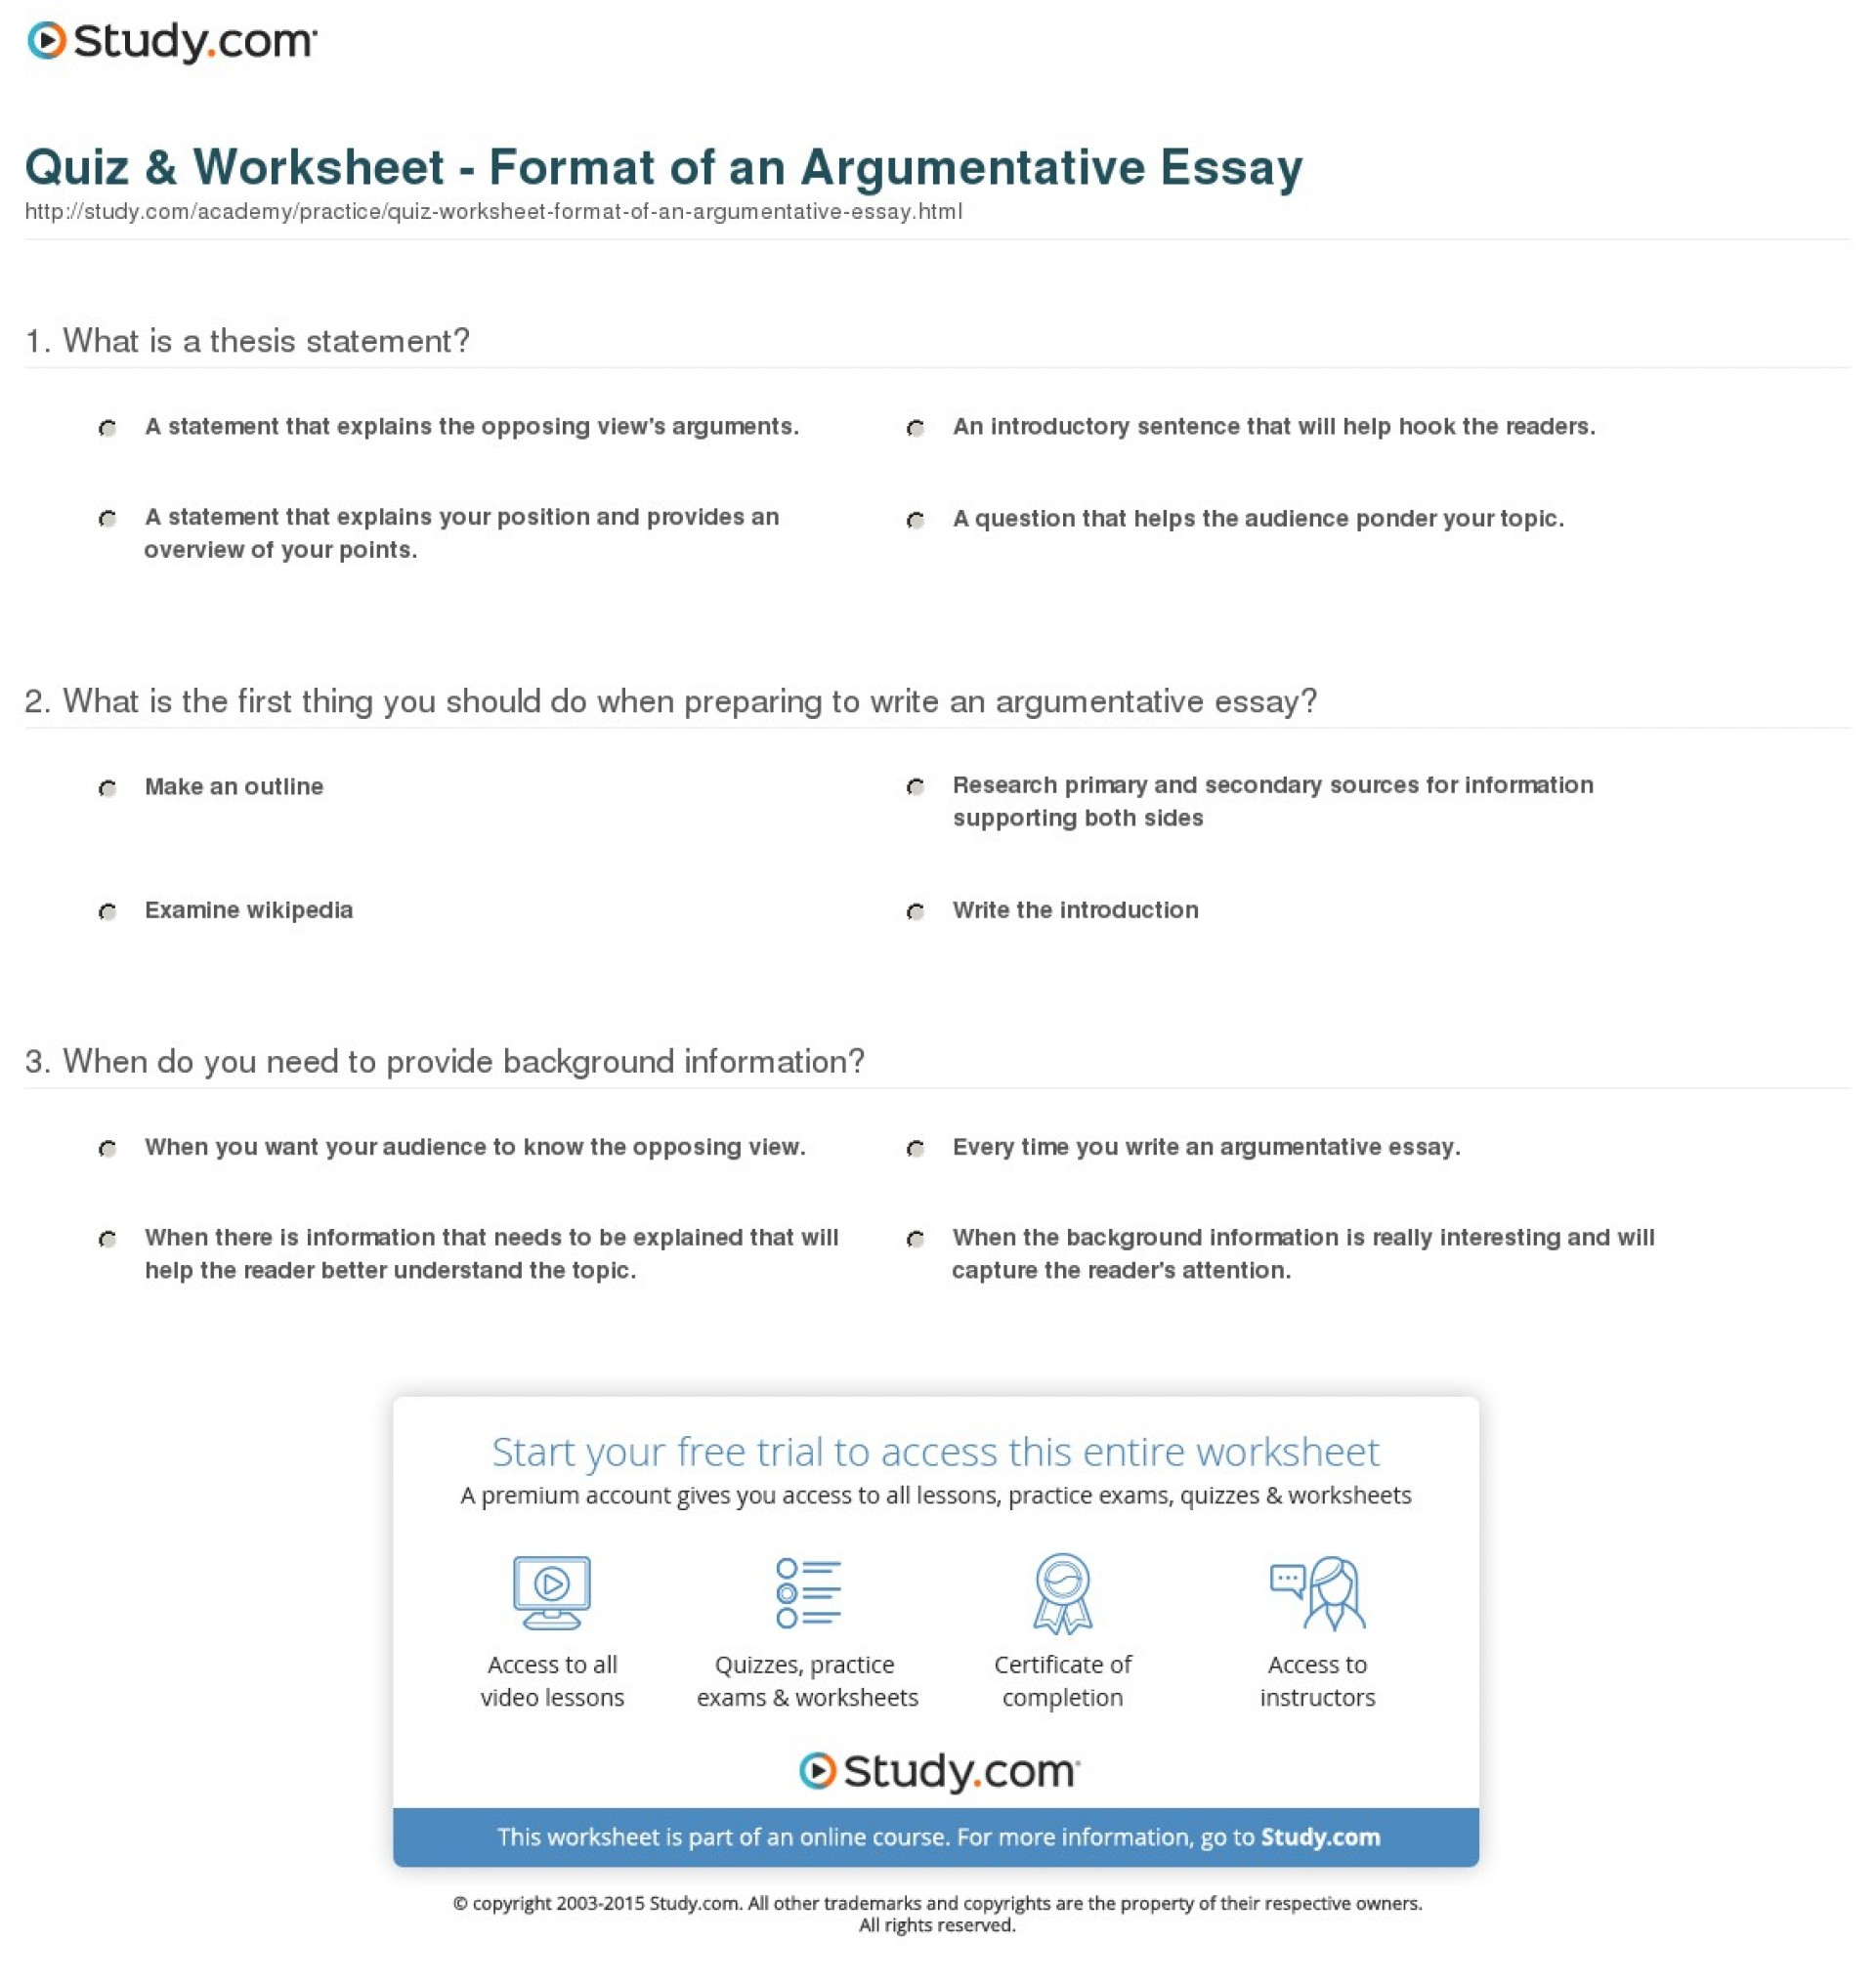 006 Argumentative Essay Outline Worksheet Quiz Format Of An Top Pdf 1920